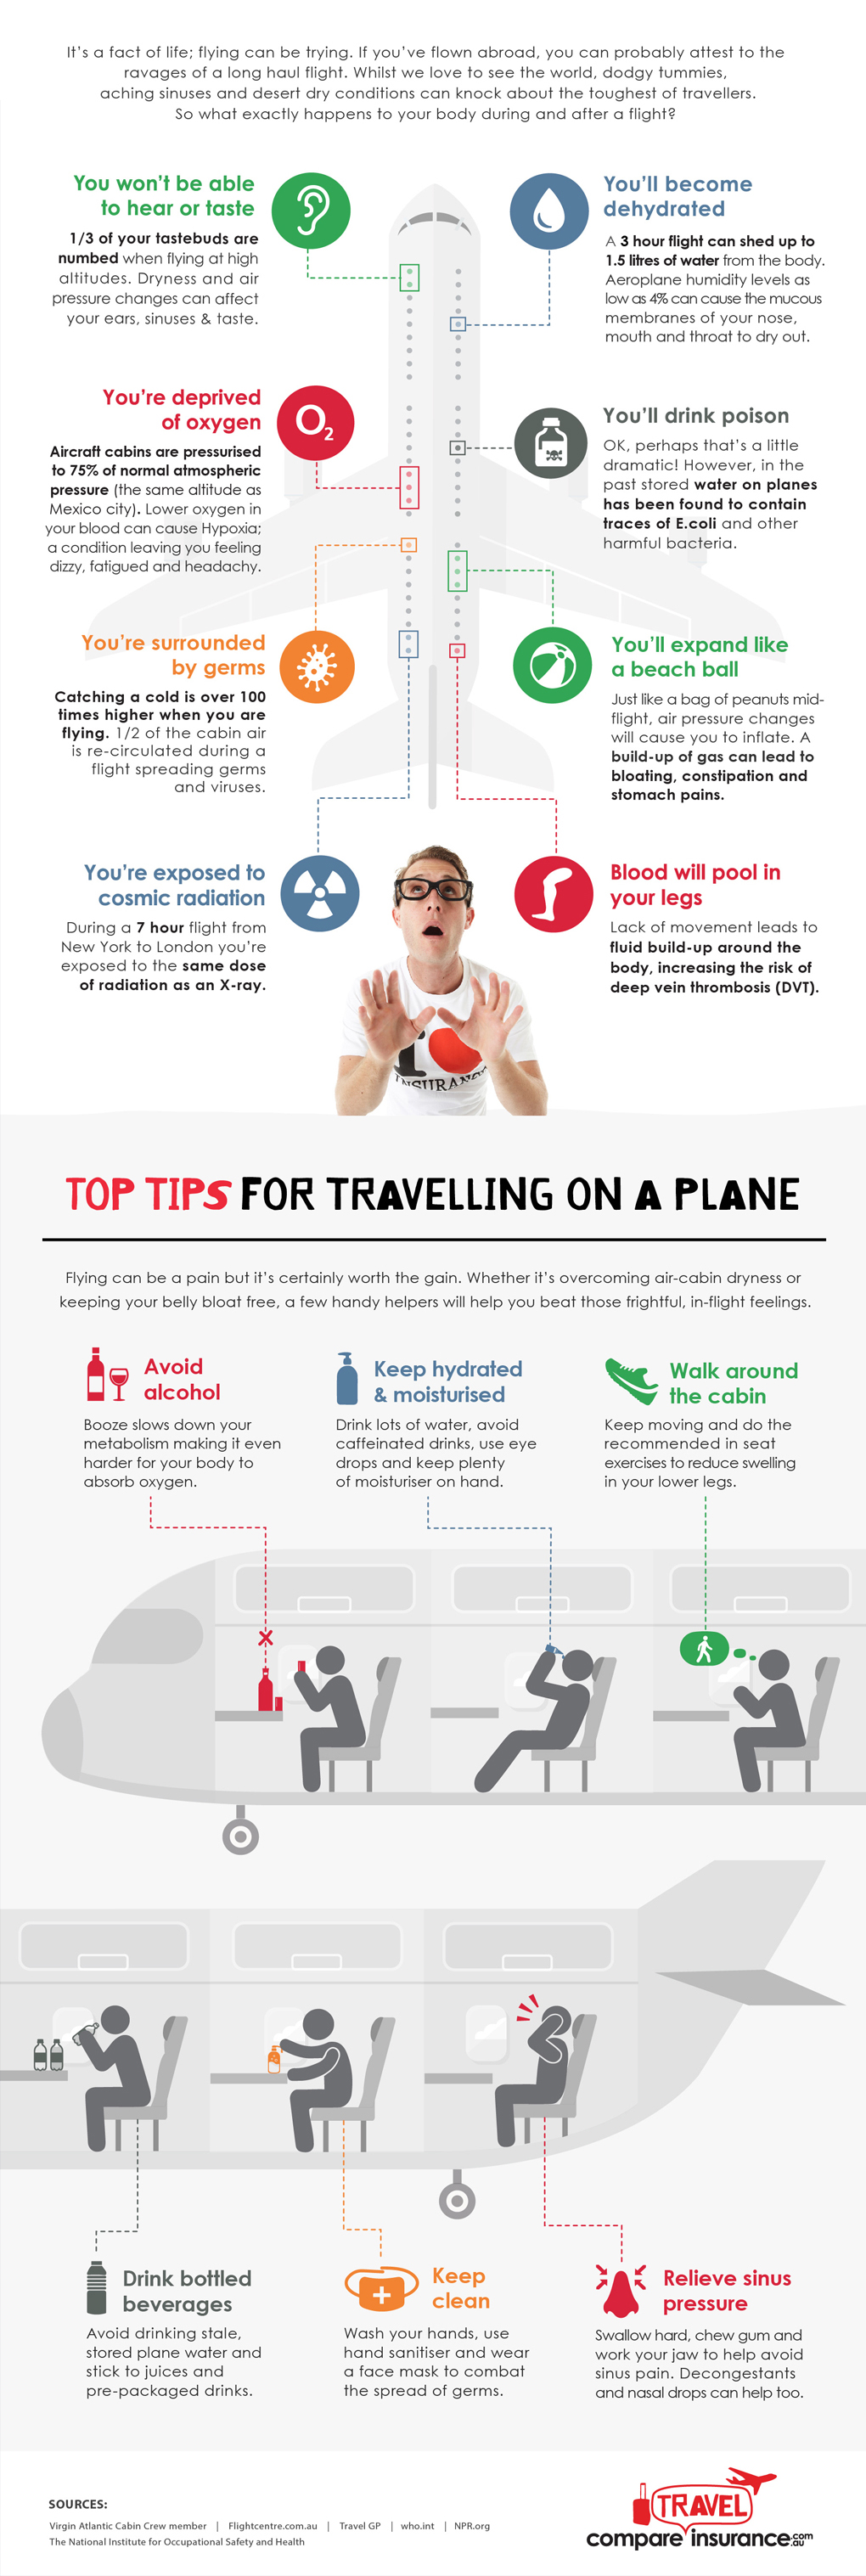 The Not-So-Happy After-Effects of Plane Travel on Your Body - Infographic